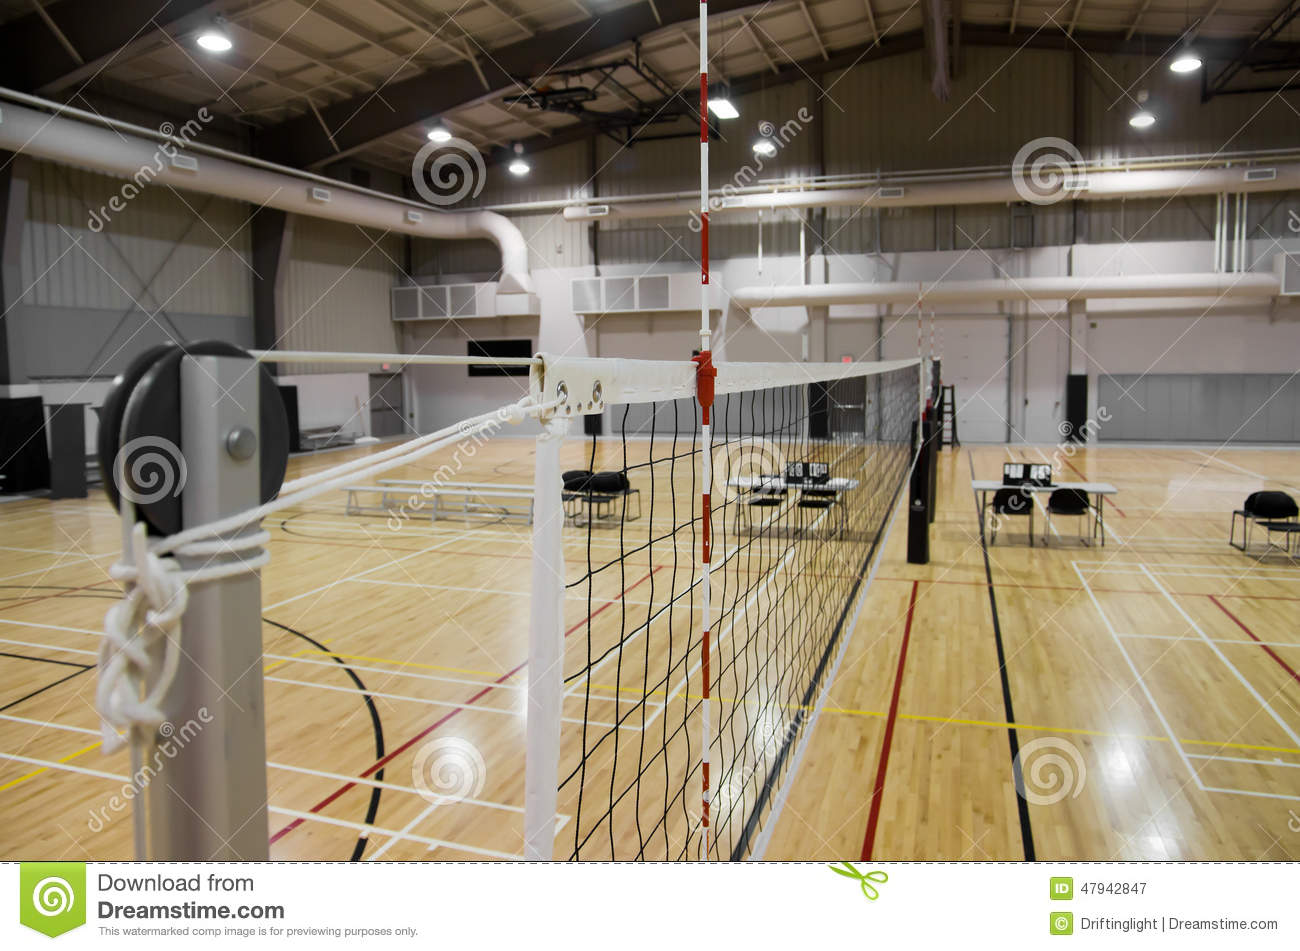 Volleyball Net, Poles and Padding – The Shalva Registry